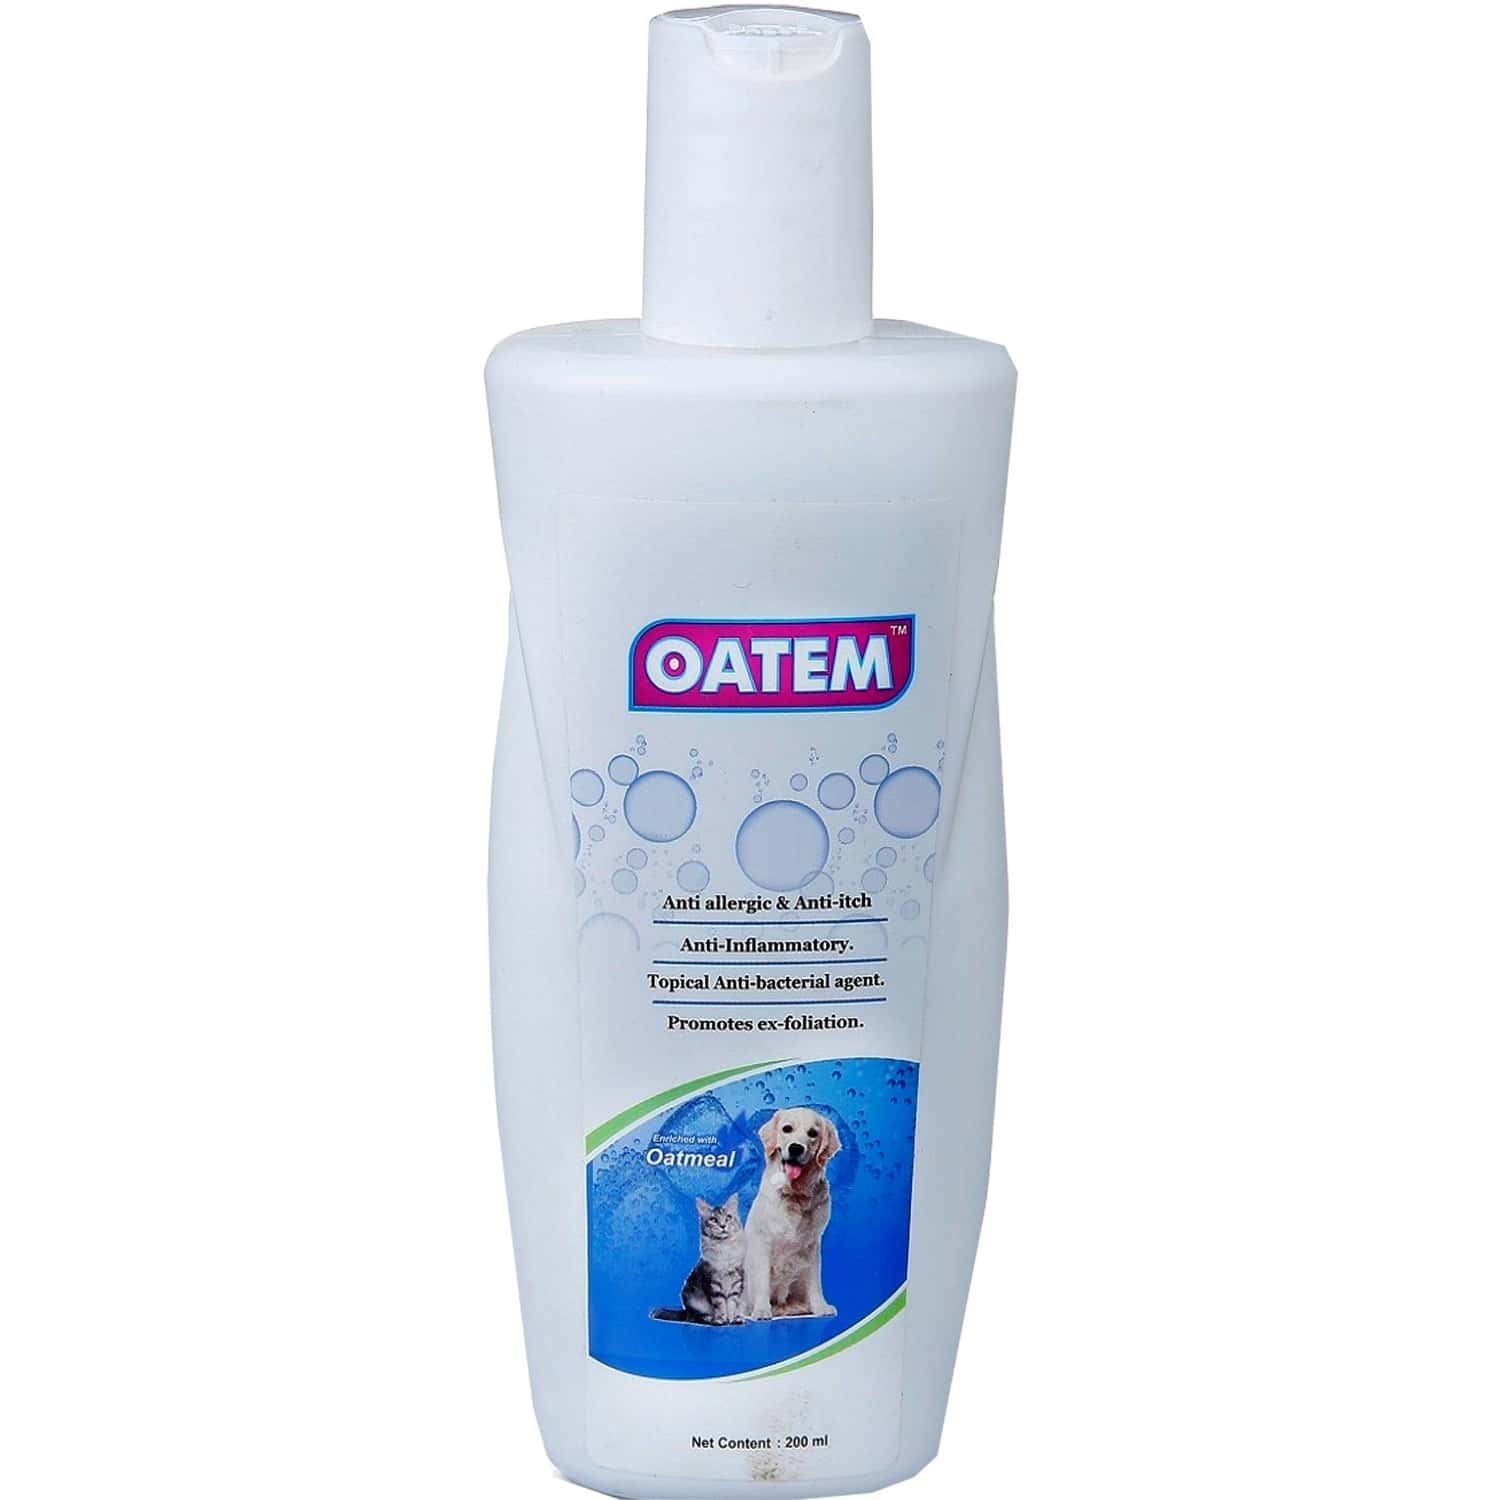 Oatem Shampoo With Oatmeal For Dog, Puppies And Cats 200 Ml